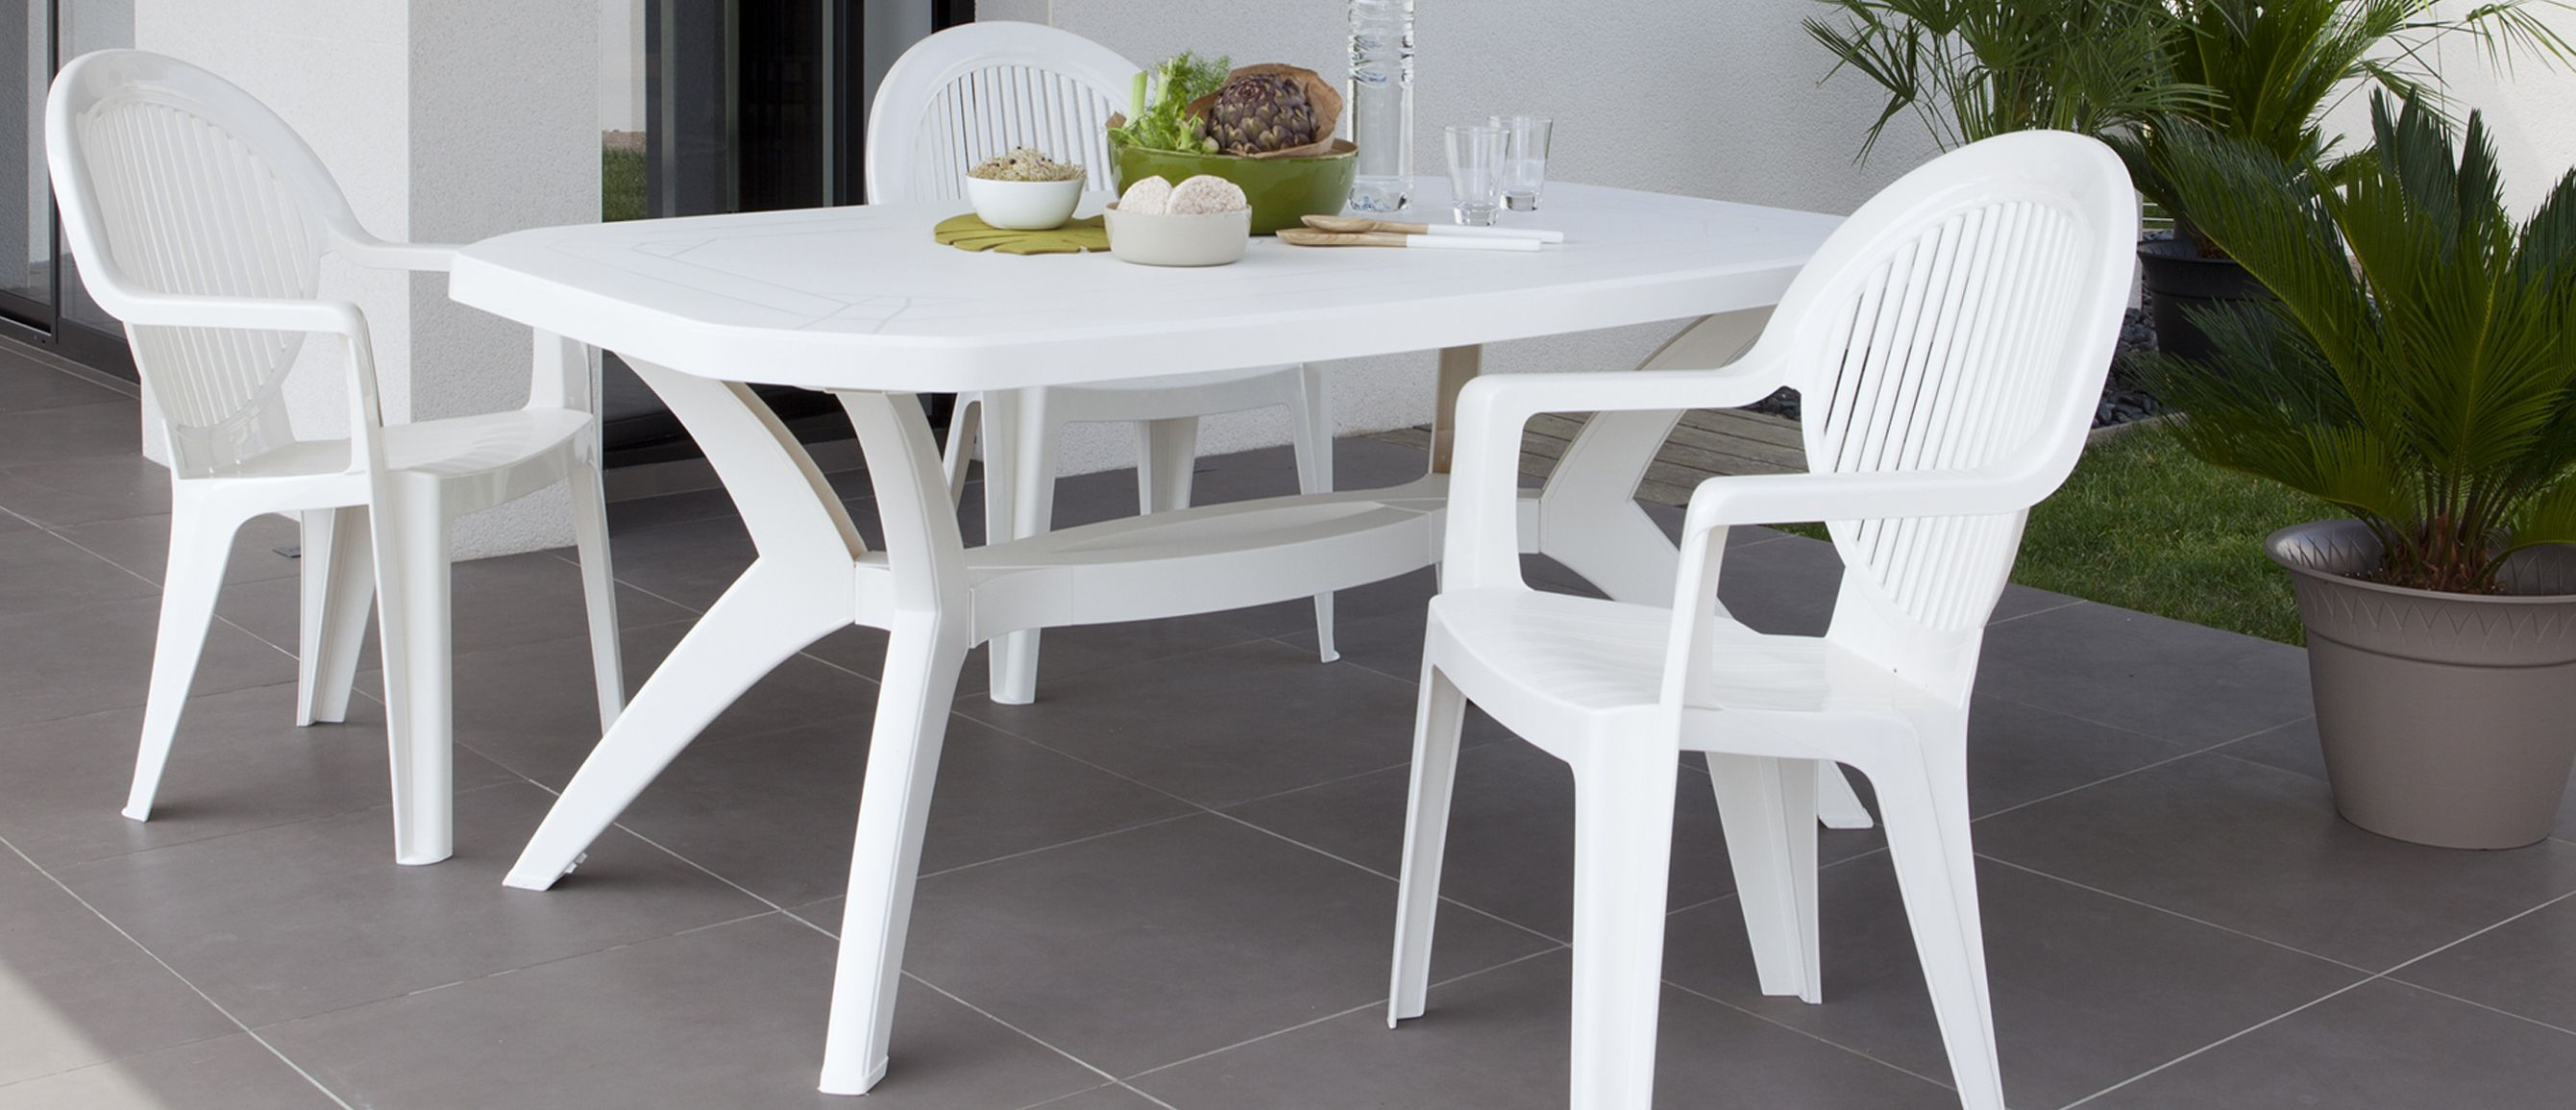 Best Grande Table De Jardin Pvc Images Design Trends 2017  # Salon De Jardin Avec Table Ovale